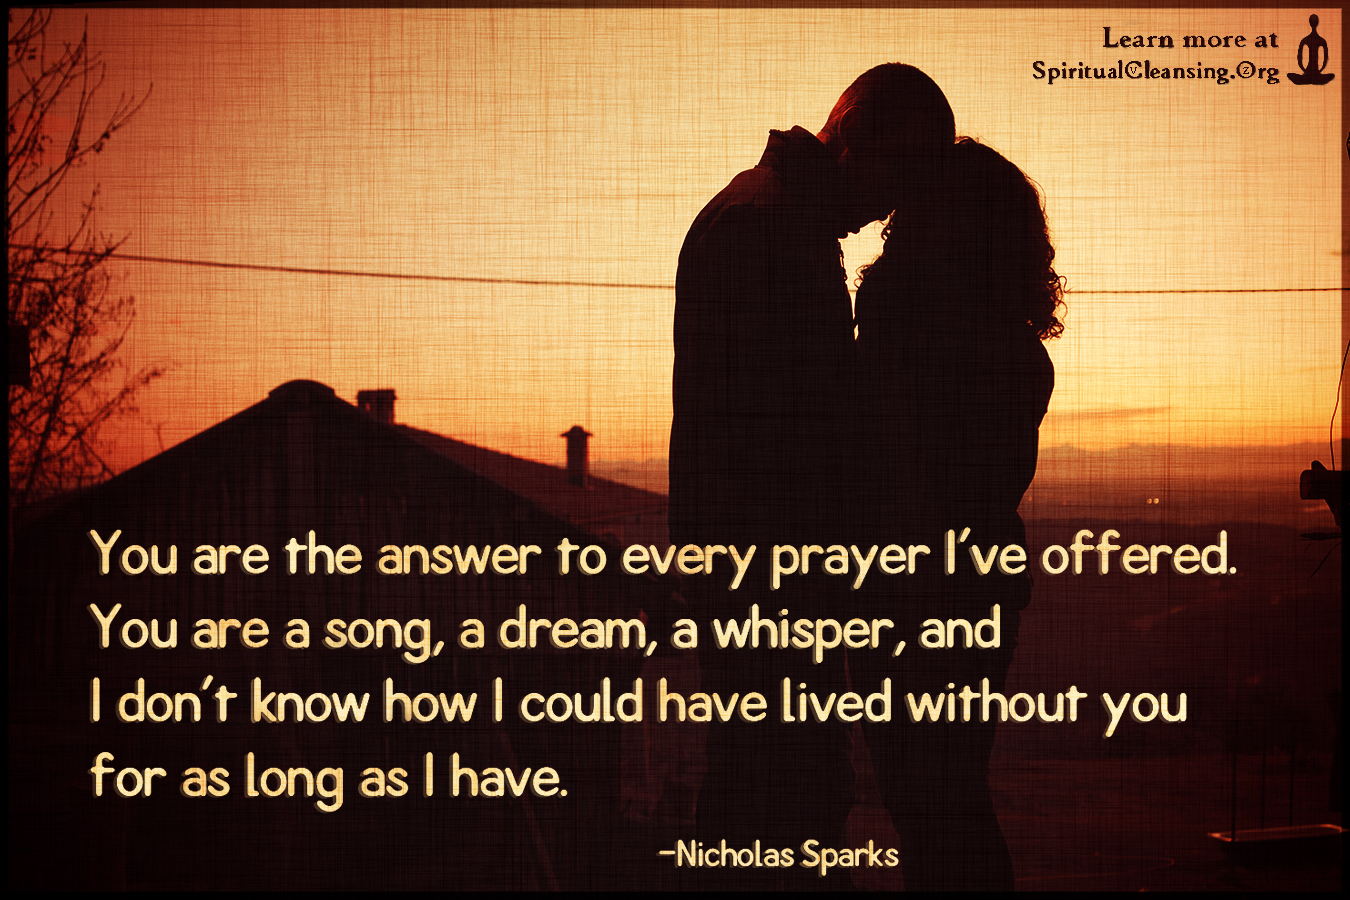 You are the answer to every prayer I've offered. You are a song, a dream